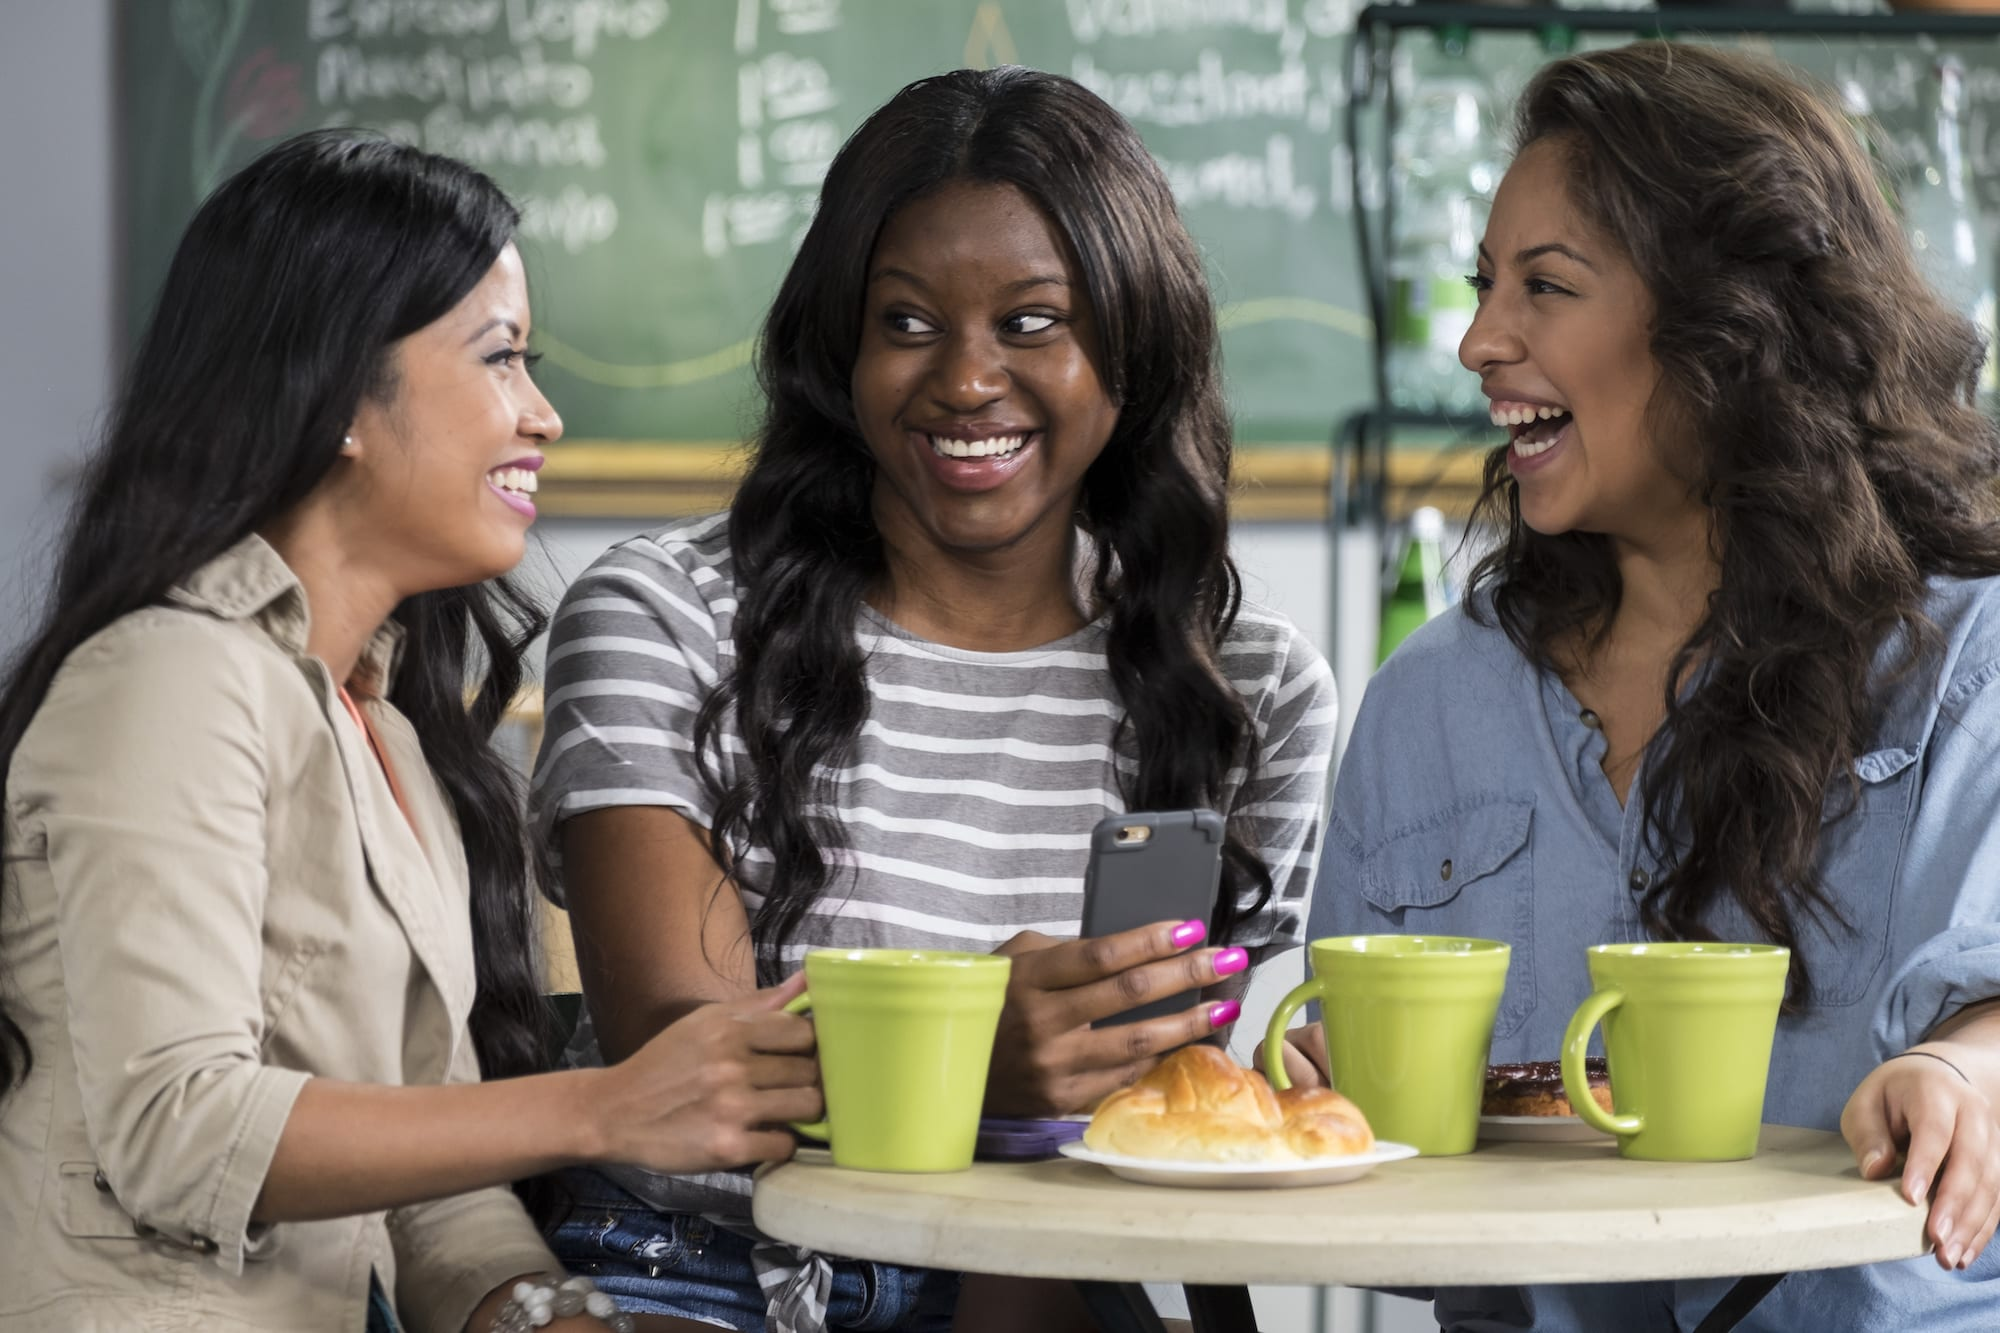 Three friends enjoying coffee in a cafe and laughing at a cellphone